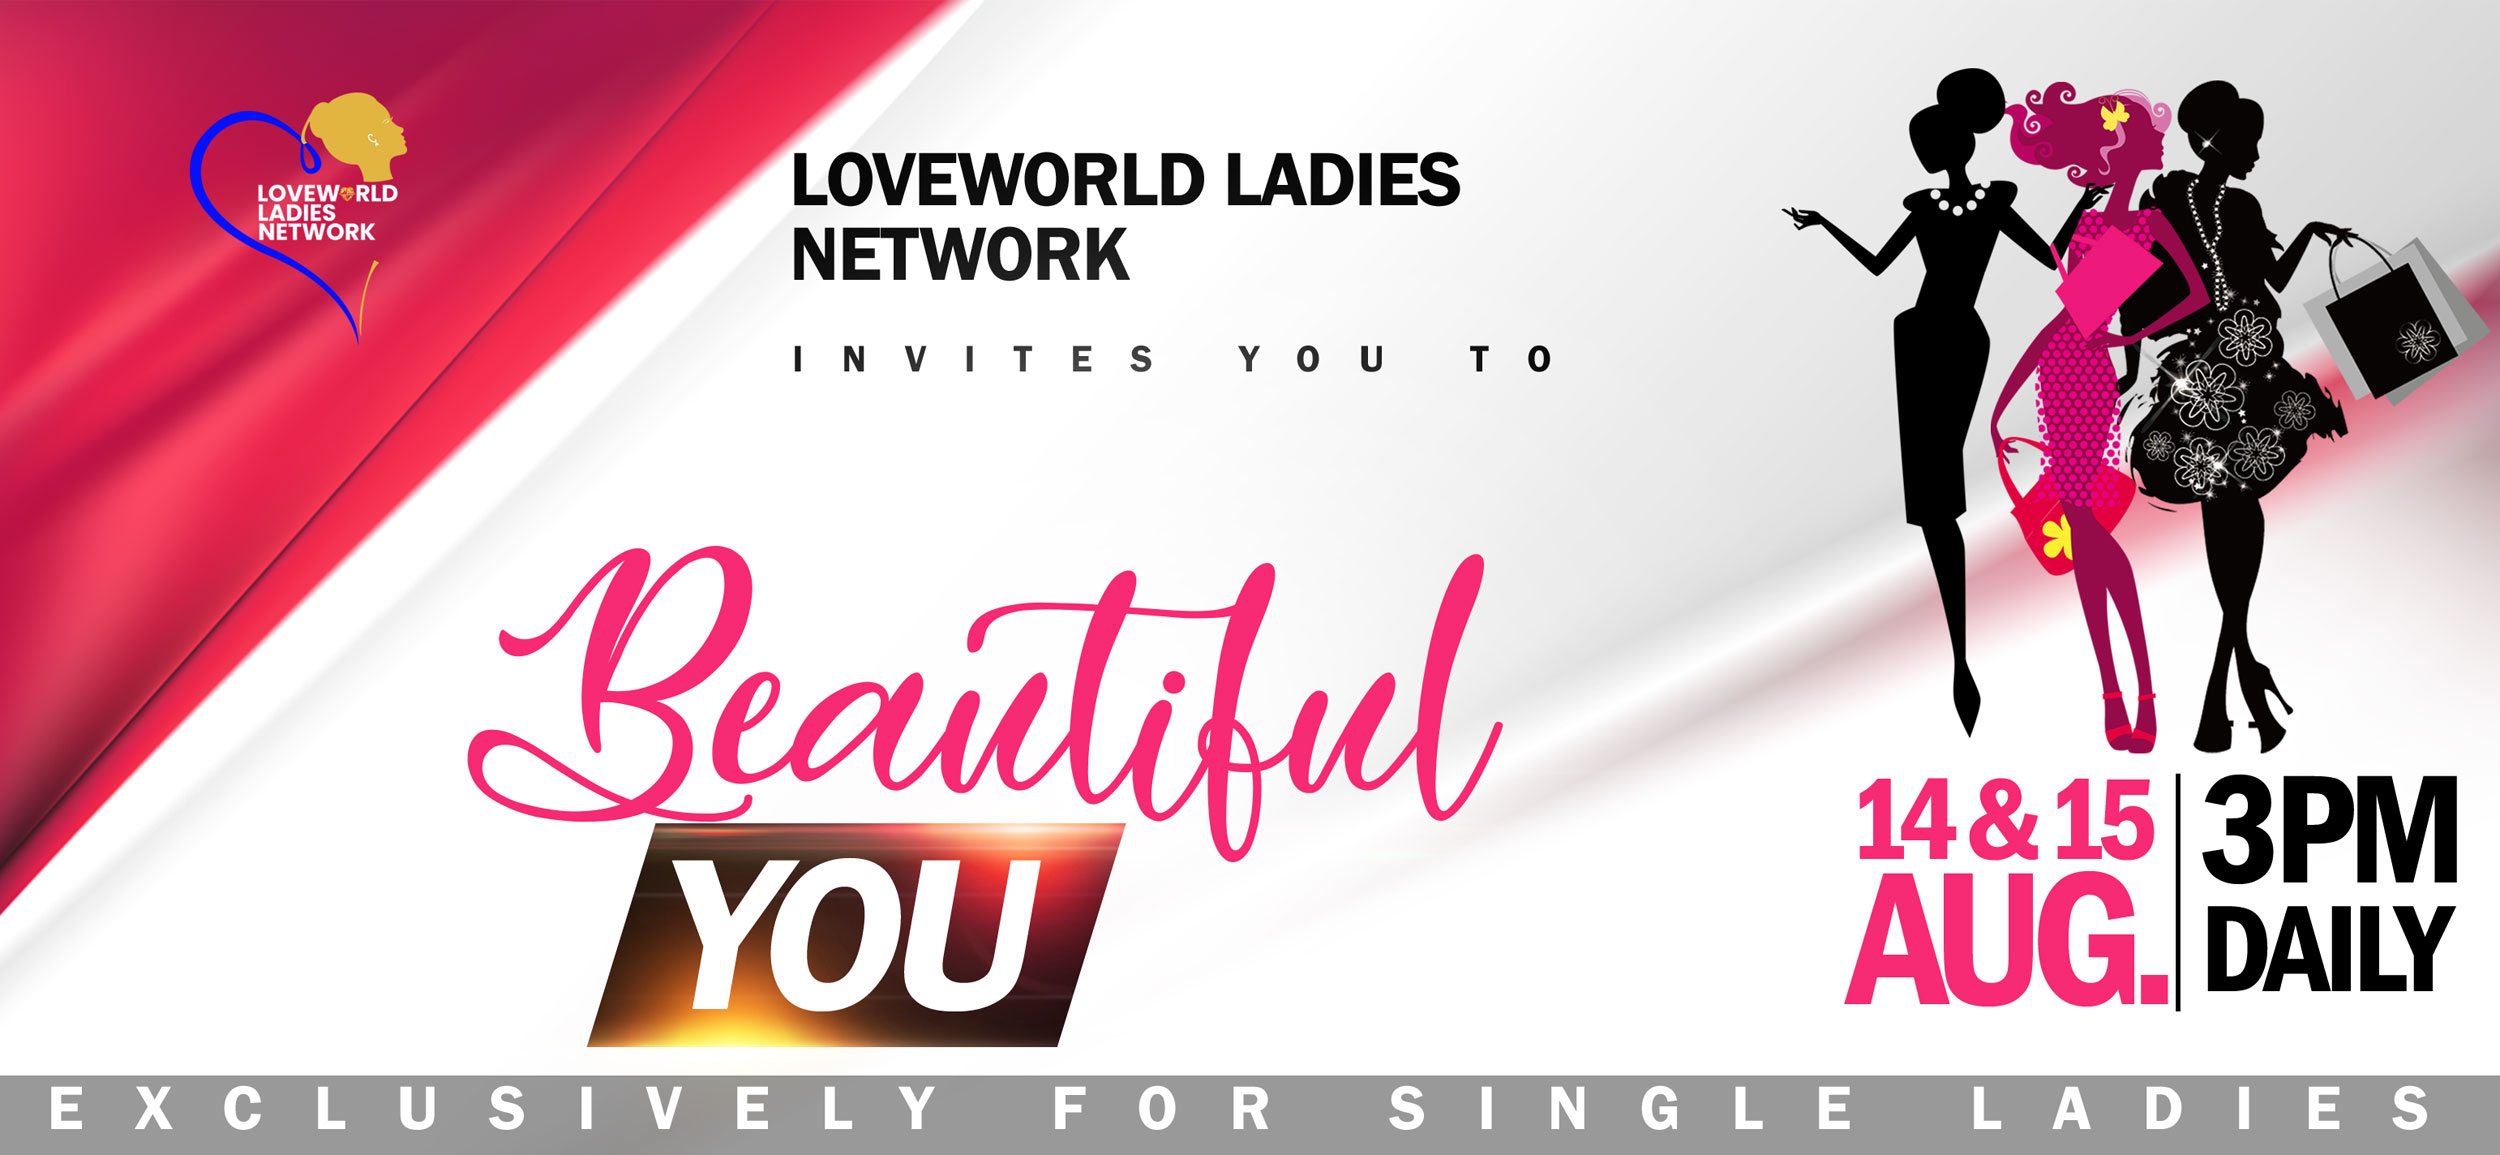 The Loveworld Ladies Network 24hrs Onine Prayers